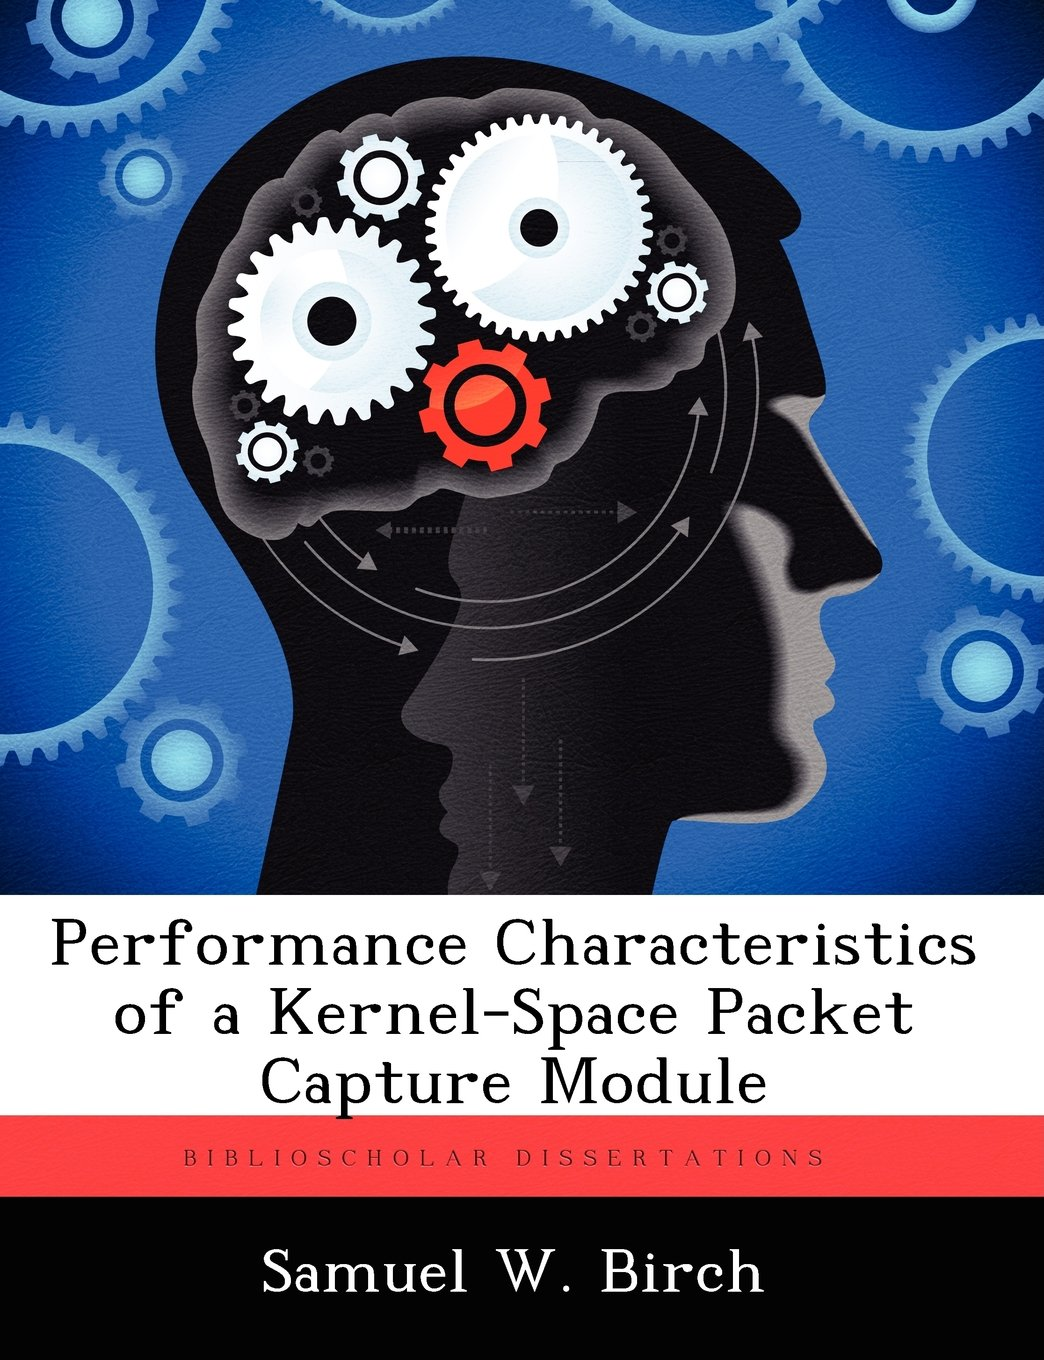 Download Performance Characteristics of a Kernel-Space Packet Capture Module PDF